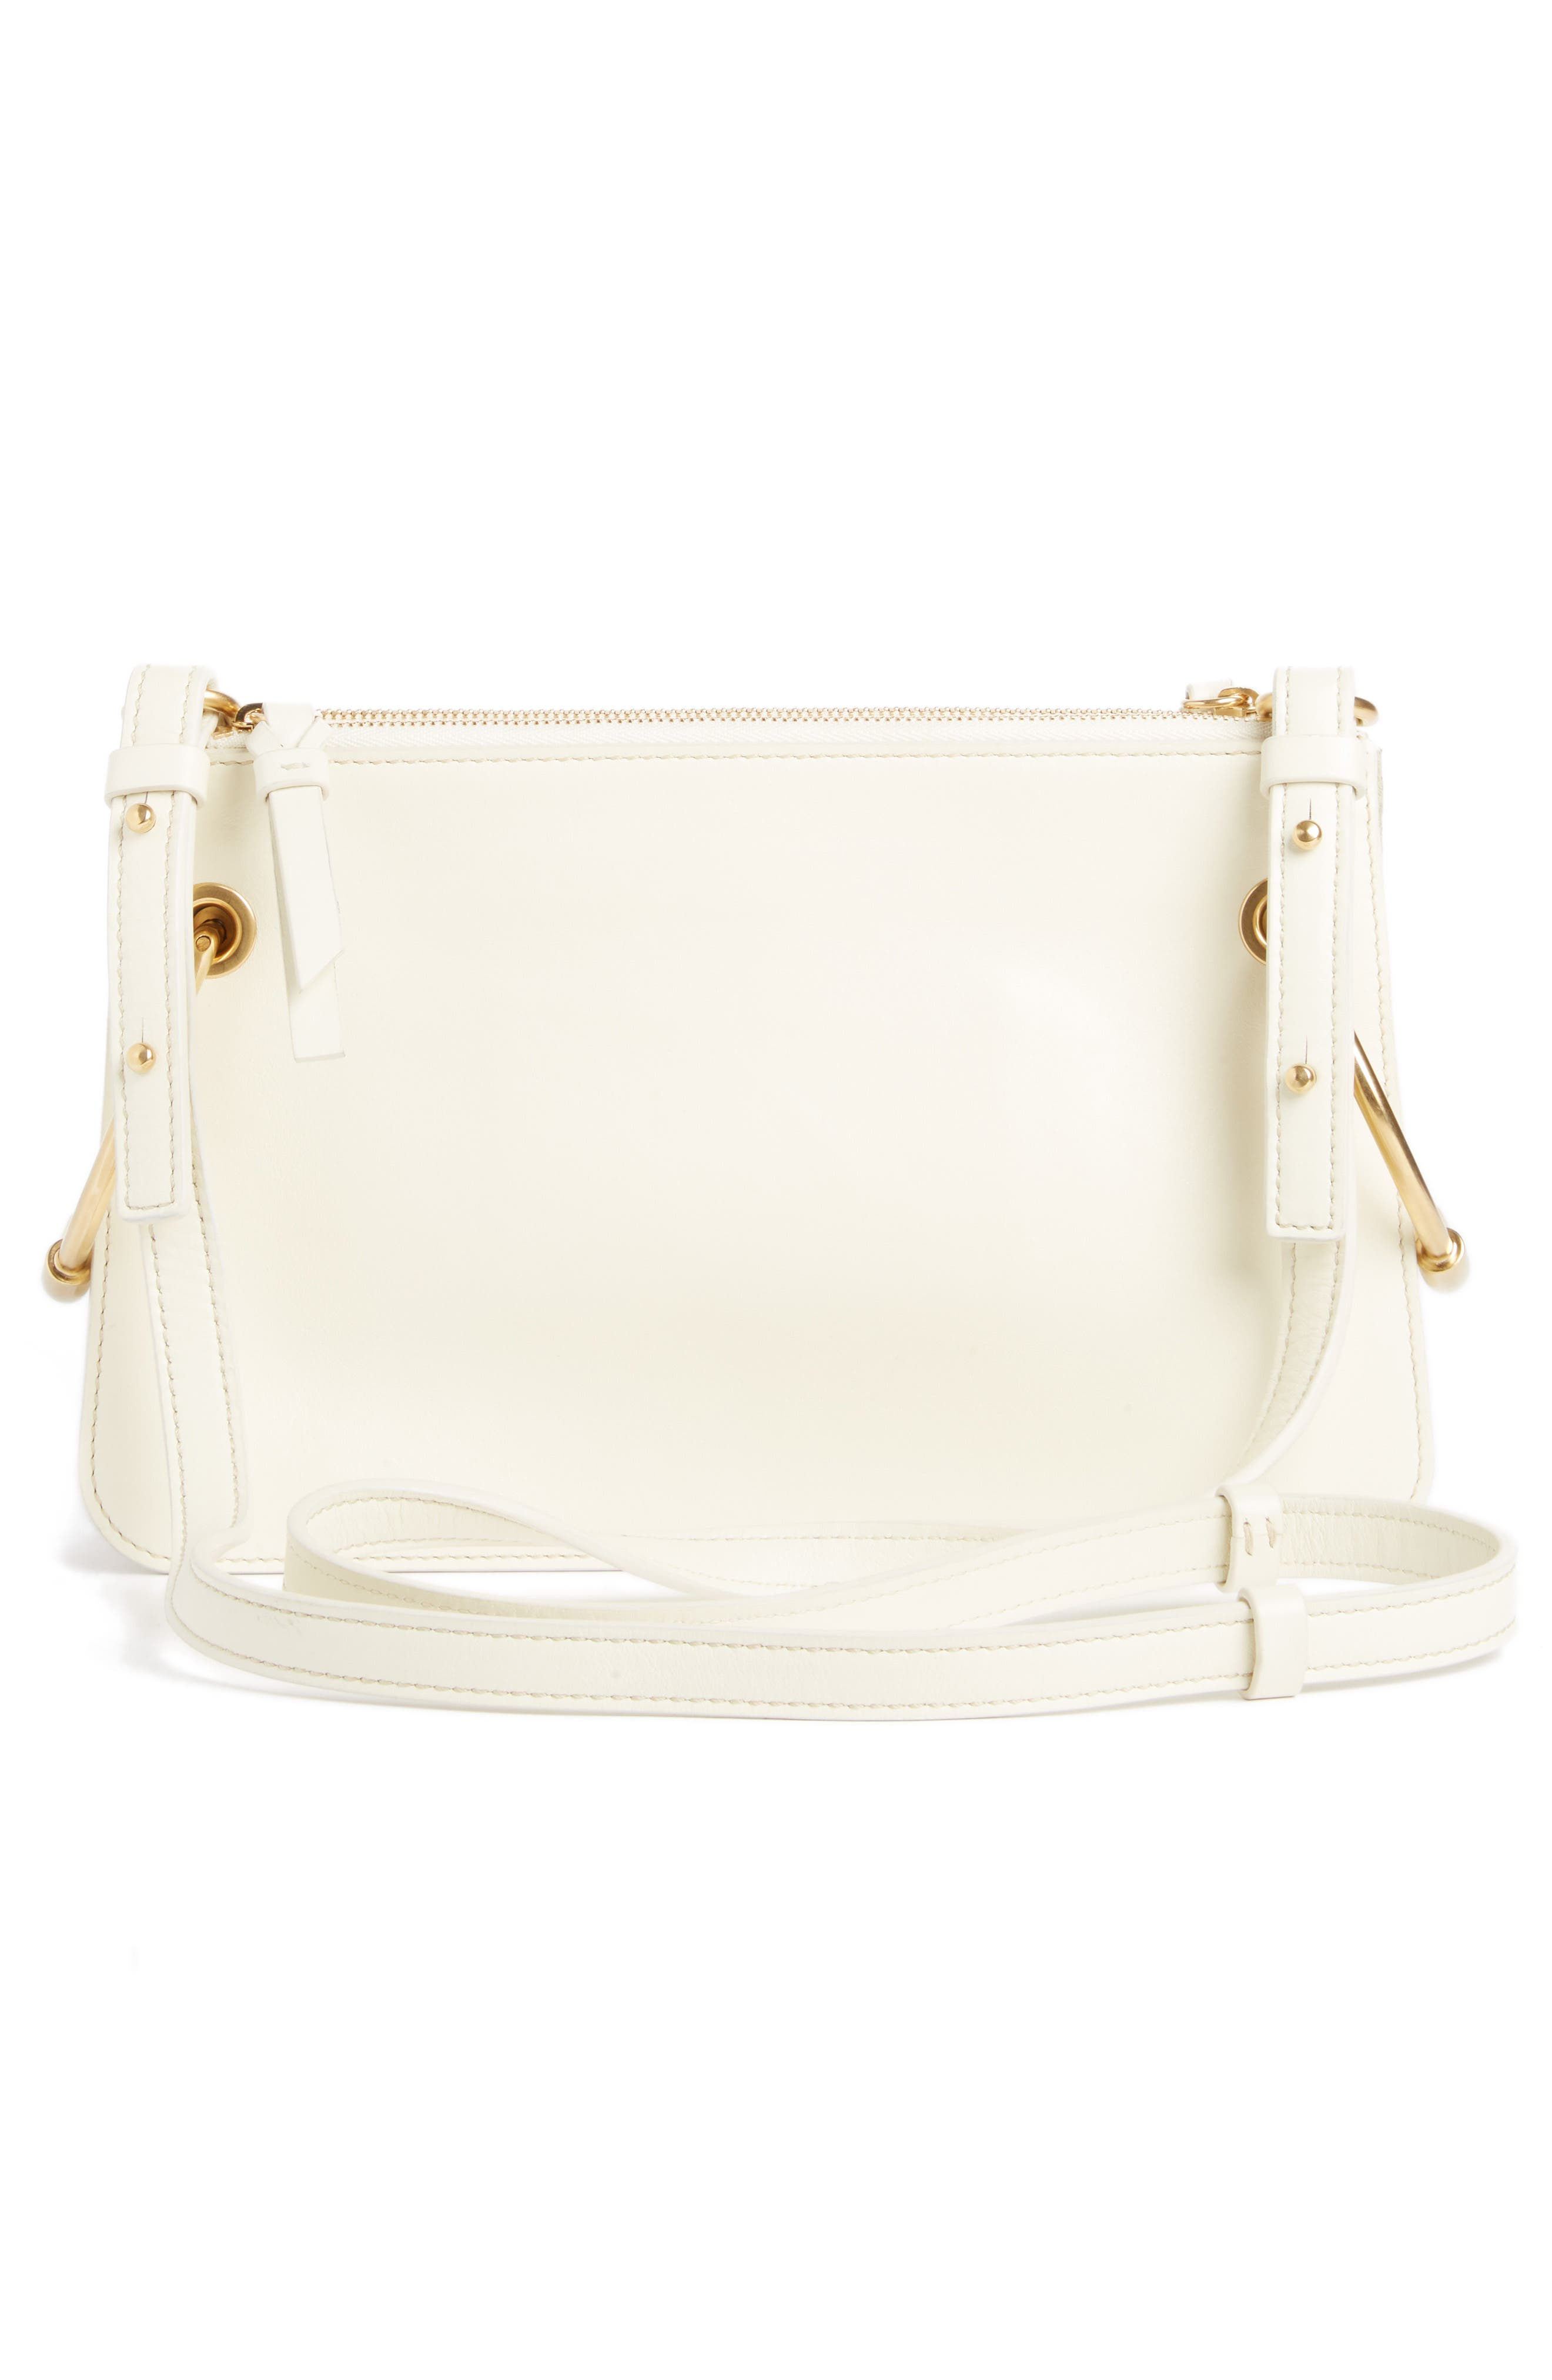 Small Roy Leather Crossbody Bag,                             Alternate thumbnail 3, color,                             NATURAL WHITE